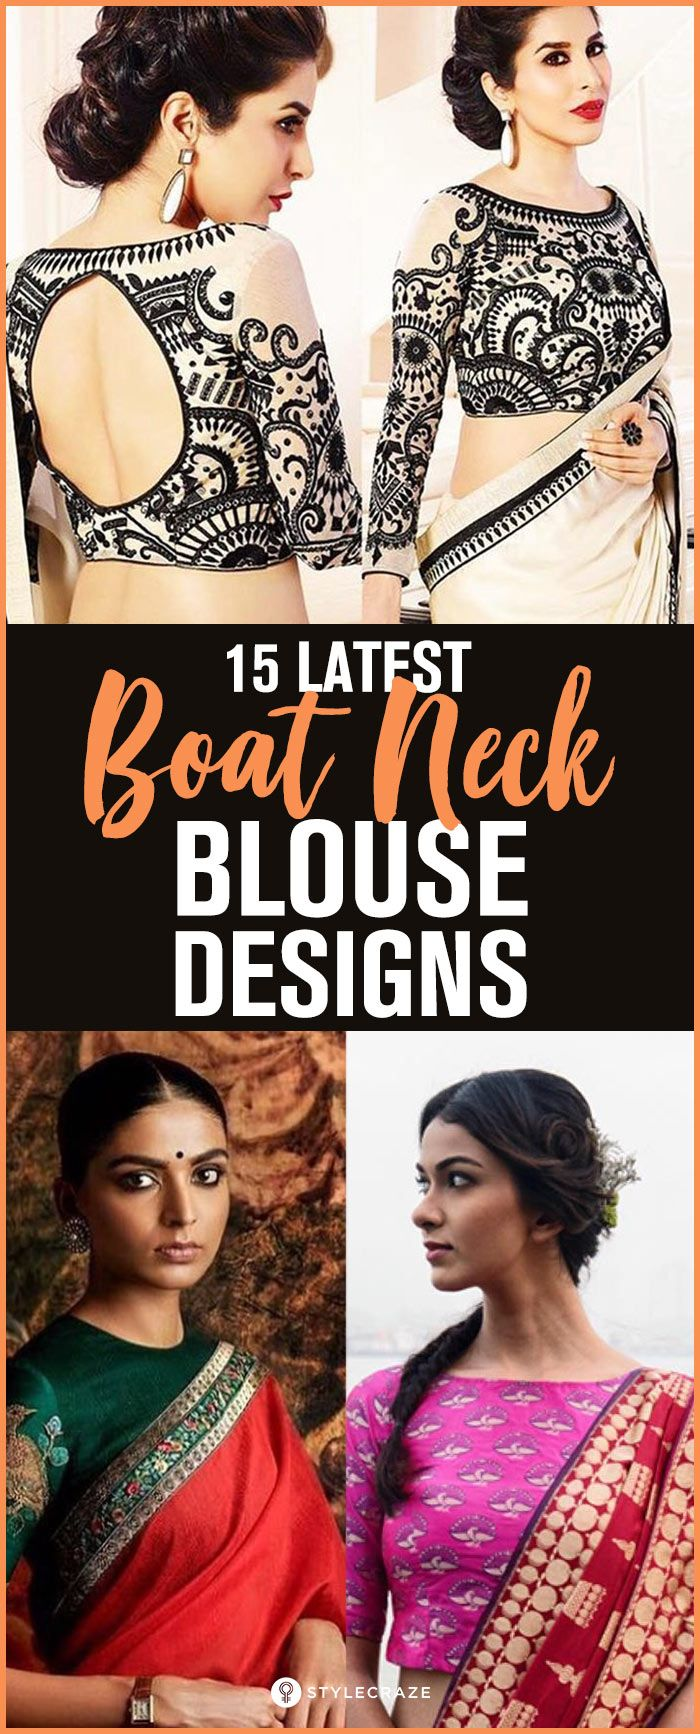 15 Latest Boat Neck Blouse Designs - Front and Back Patterns